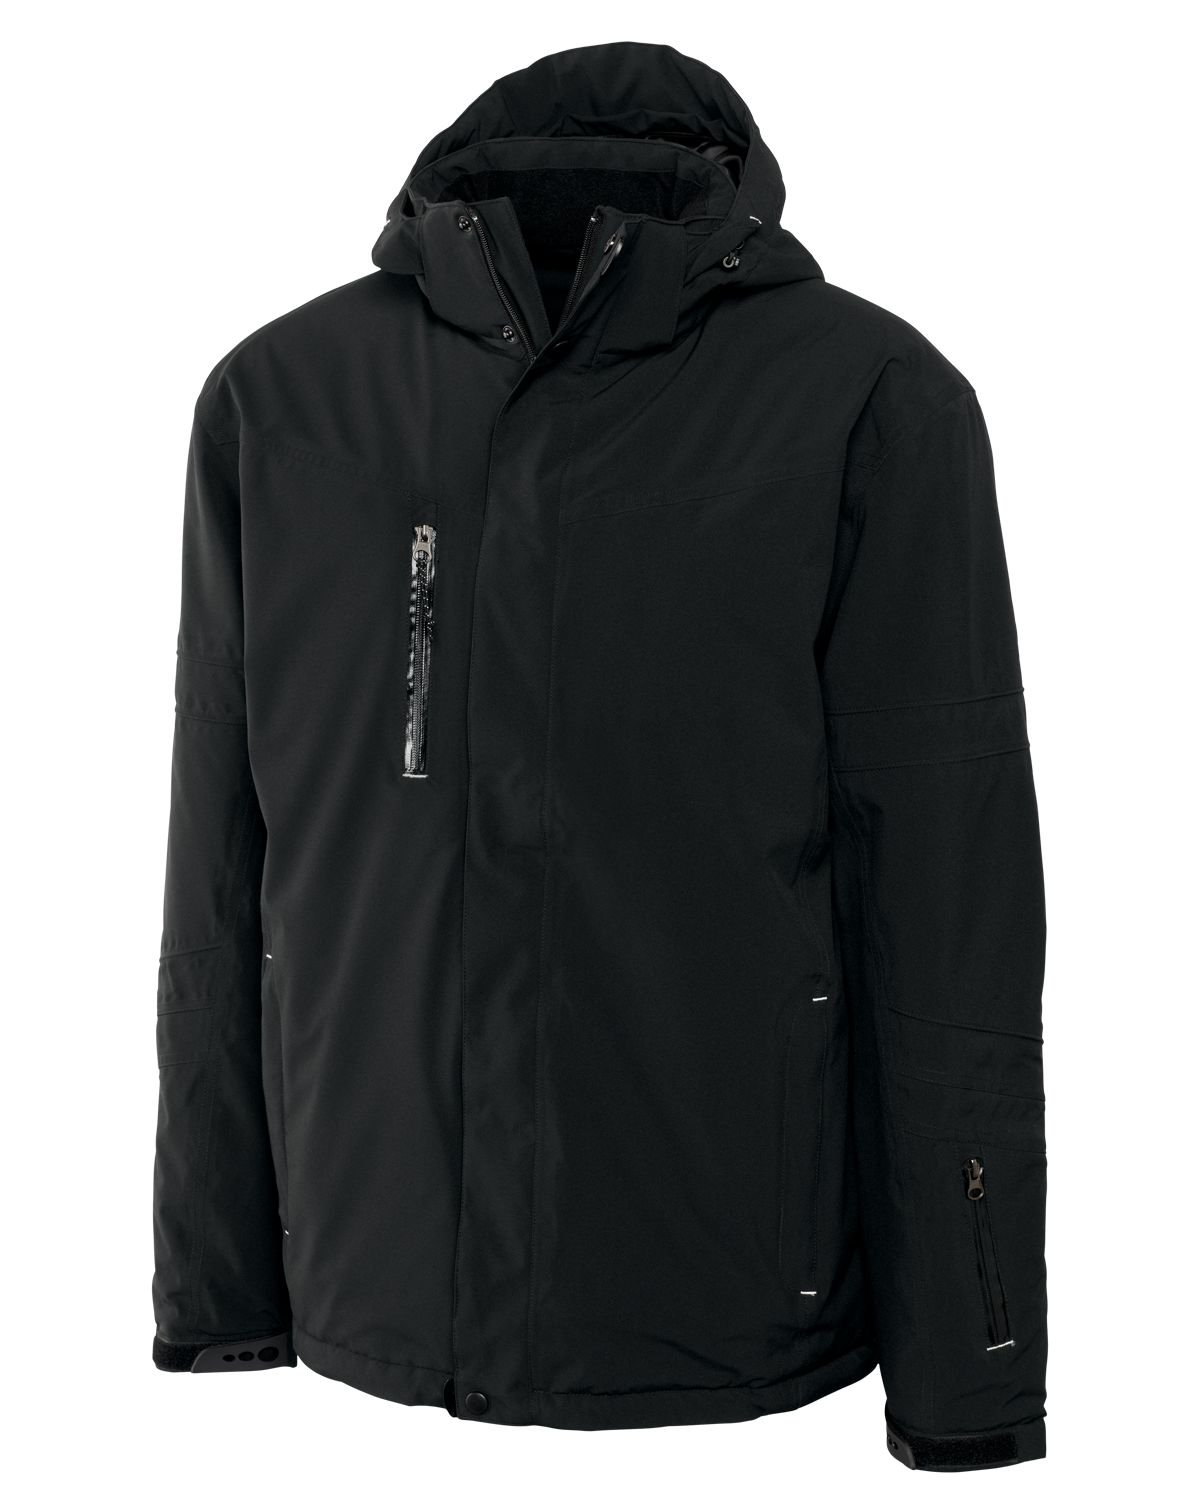 Cutter & Buck Men's Big-Tall Weathertec Sanders Jacket, Black, 5X/Big